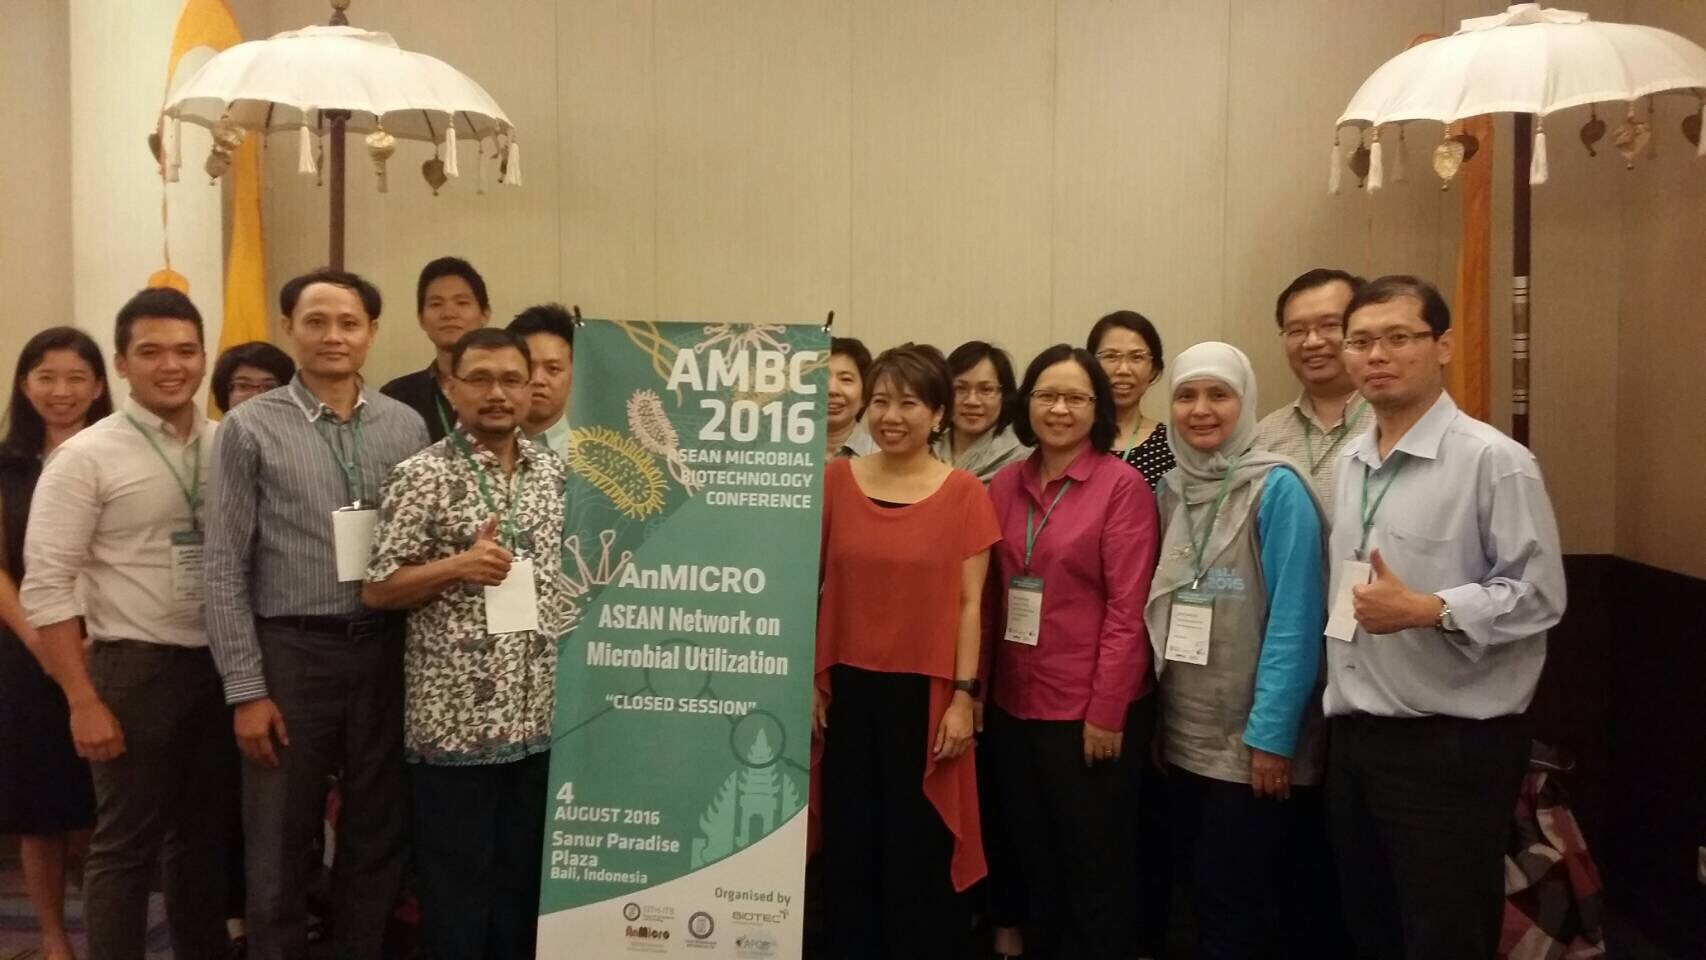 Thank you for all participants and organizing committee for putting together the successful events: the 3rd AnMicro meeting and AMBC2016